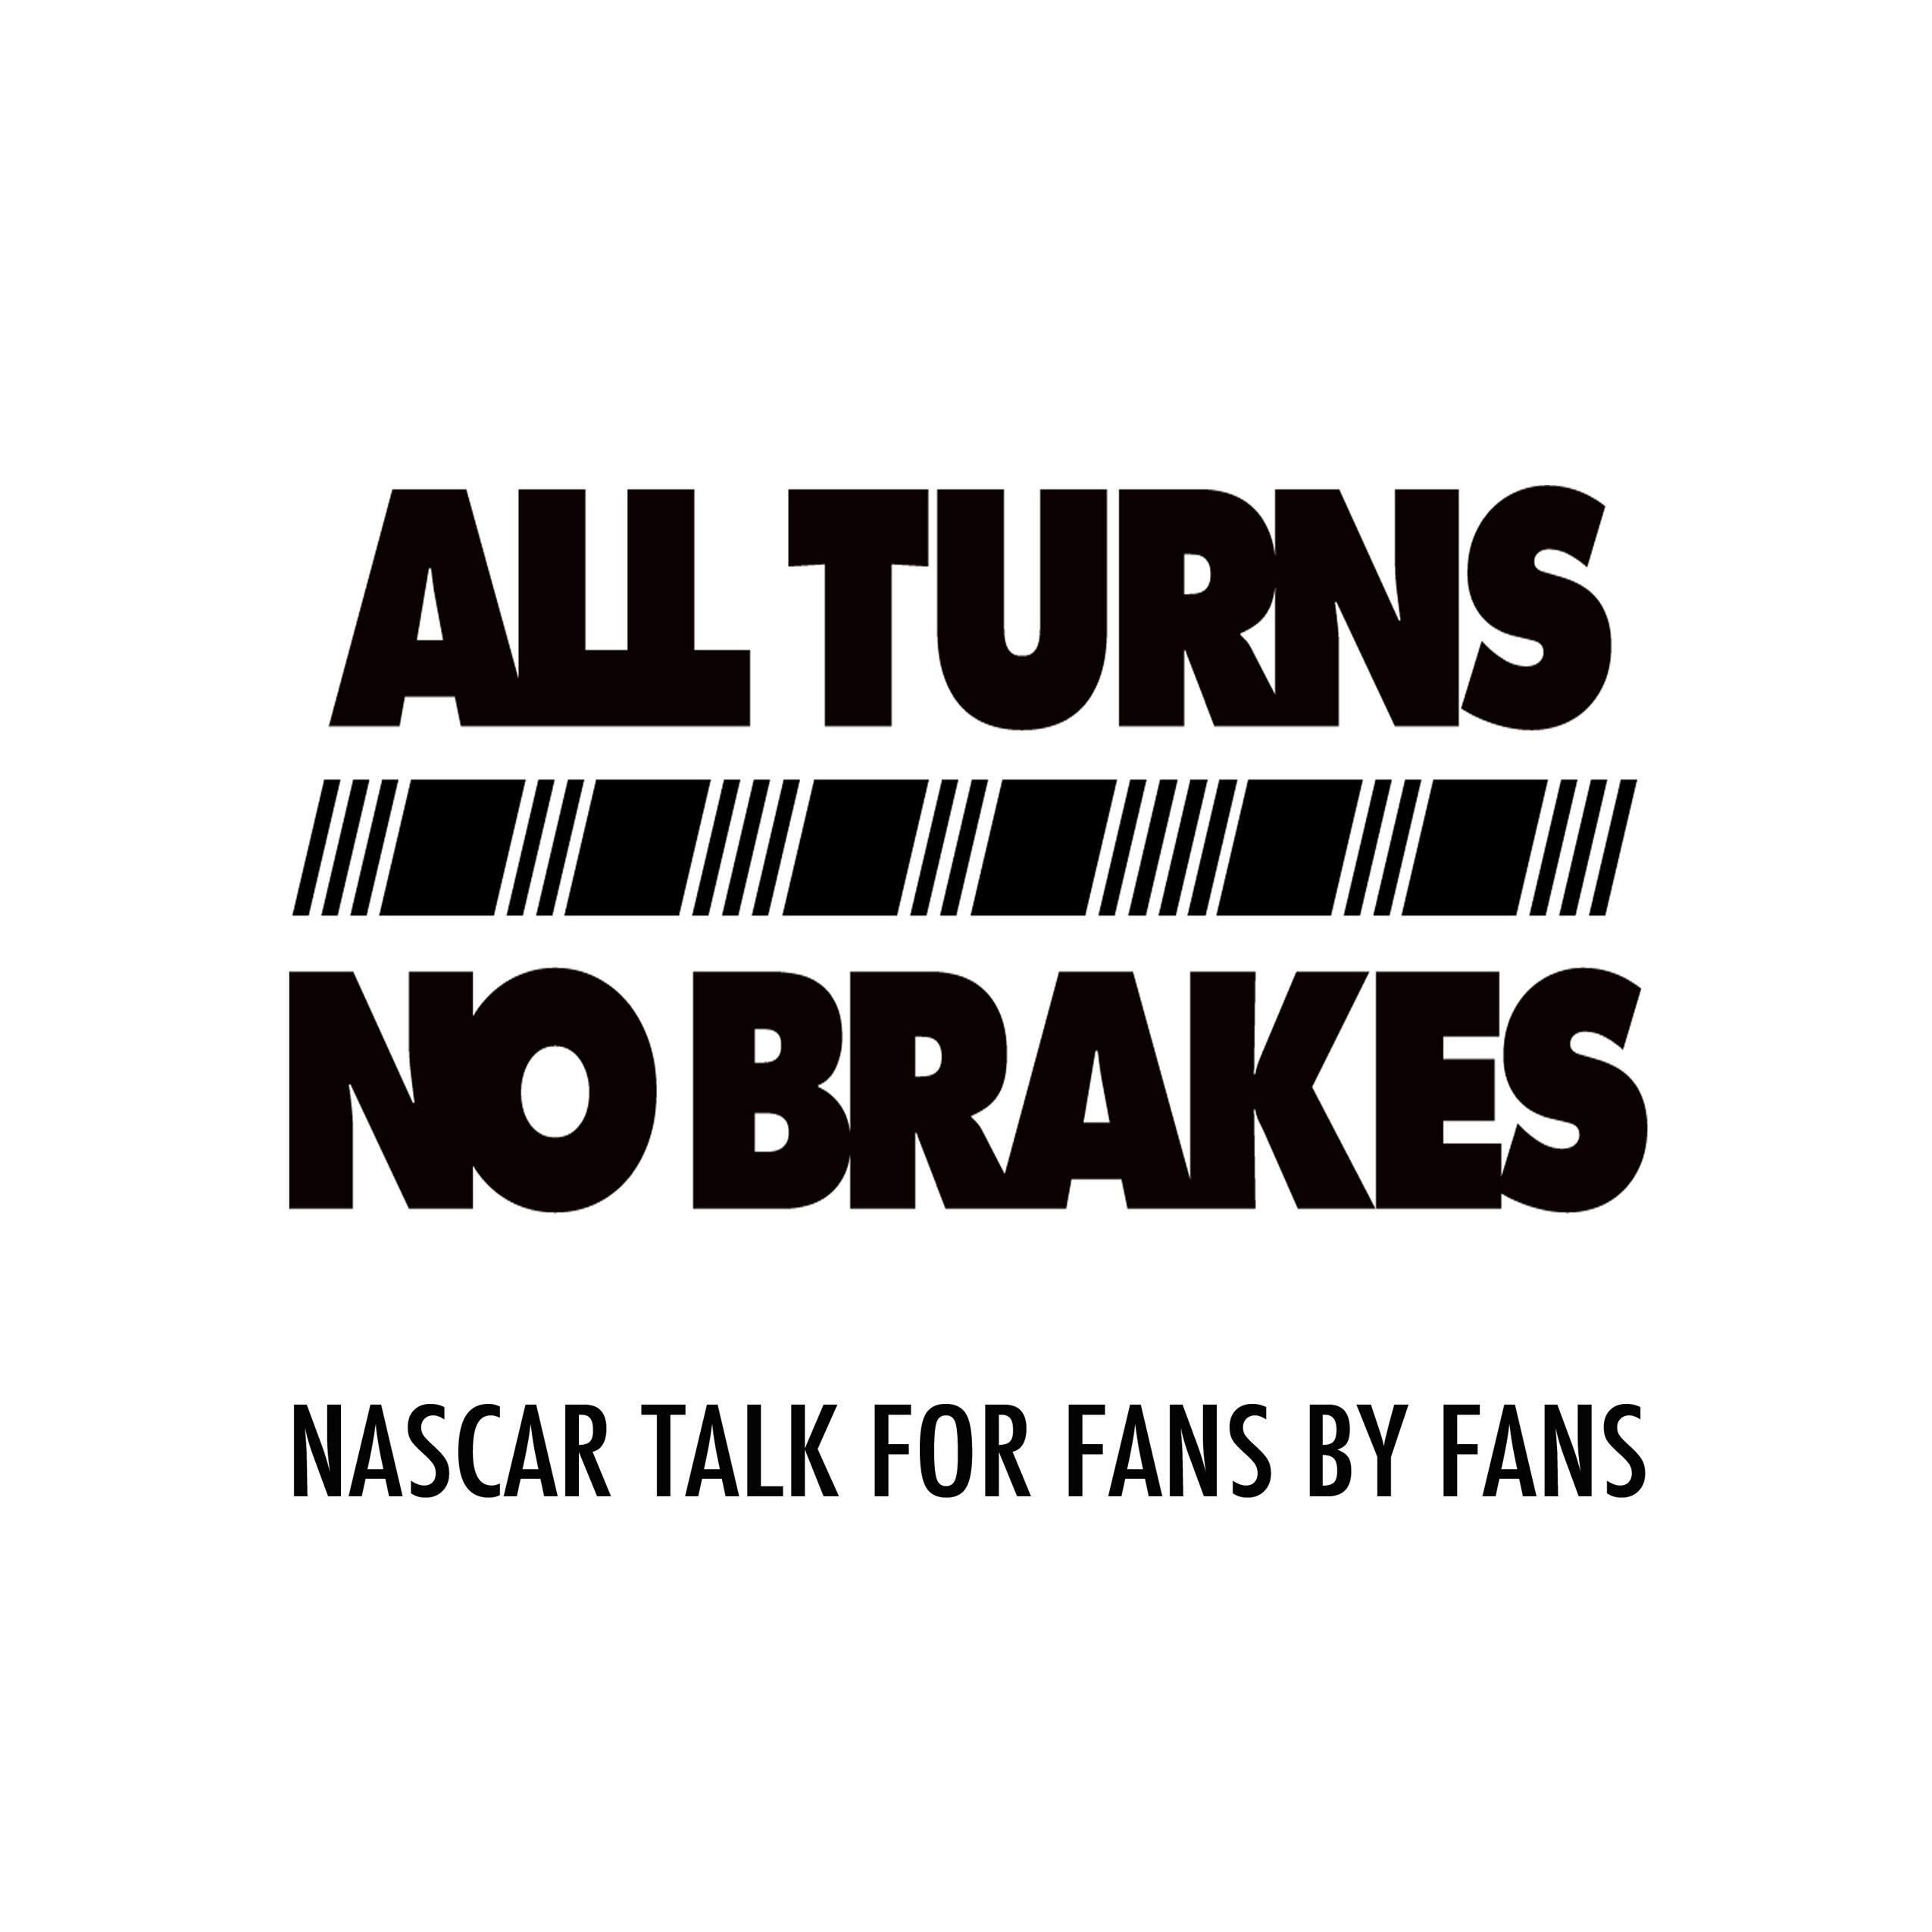 Listen to the All Turns No Brakes NASCAR Podcast Episode - Delightful. Onions. on iHeartRadio | iHeartRadio